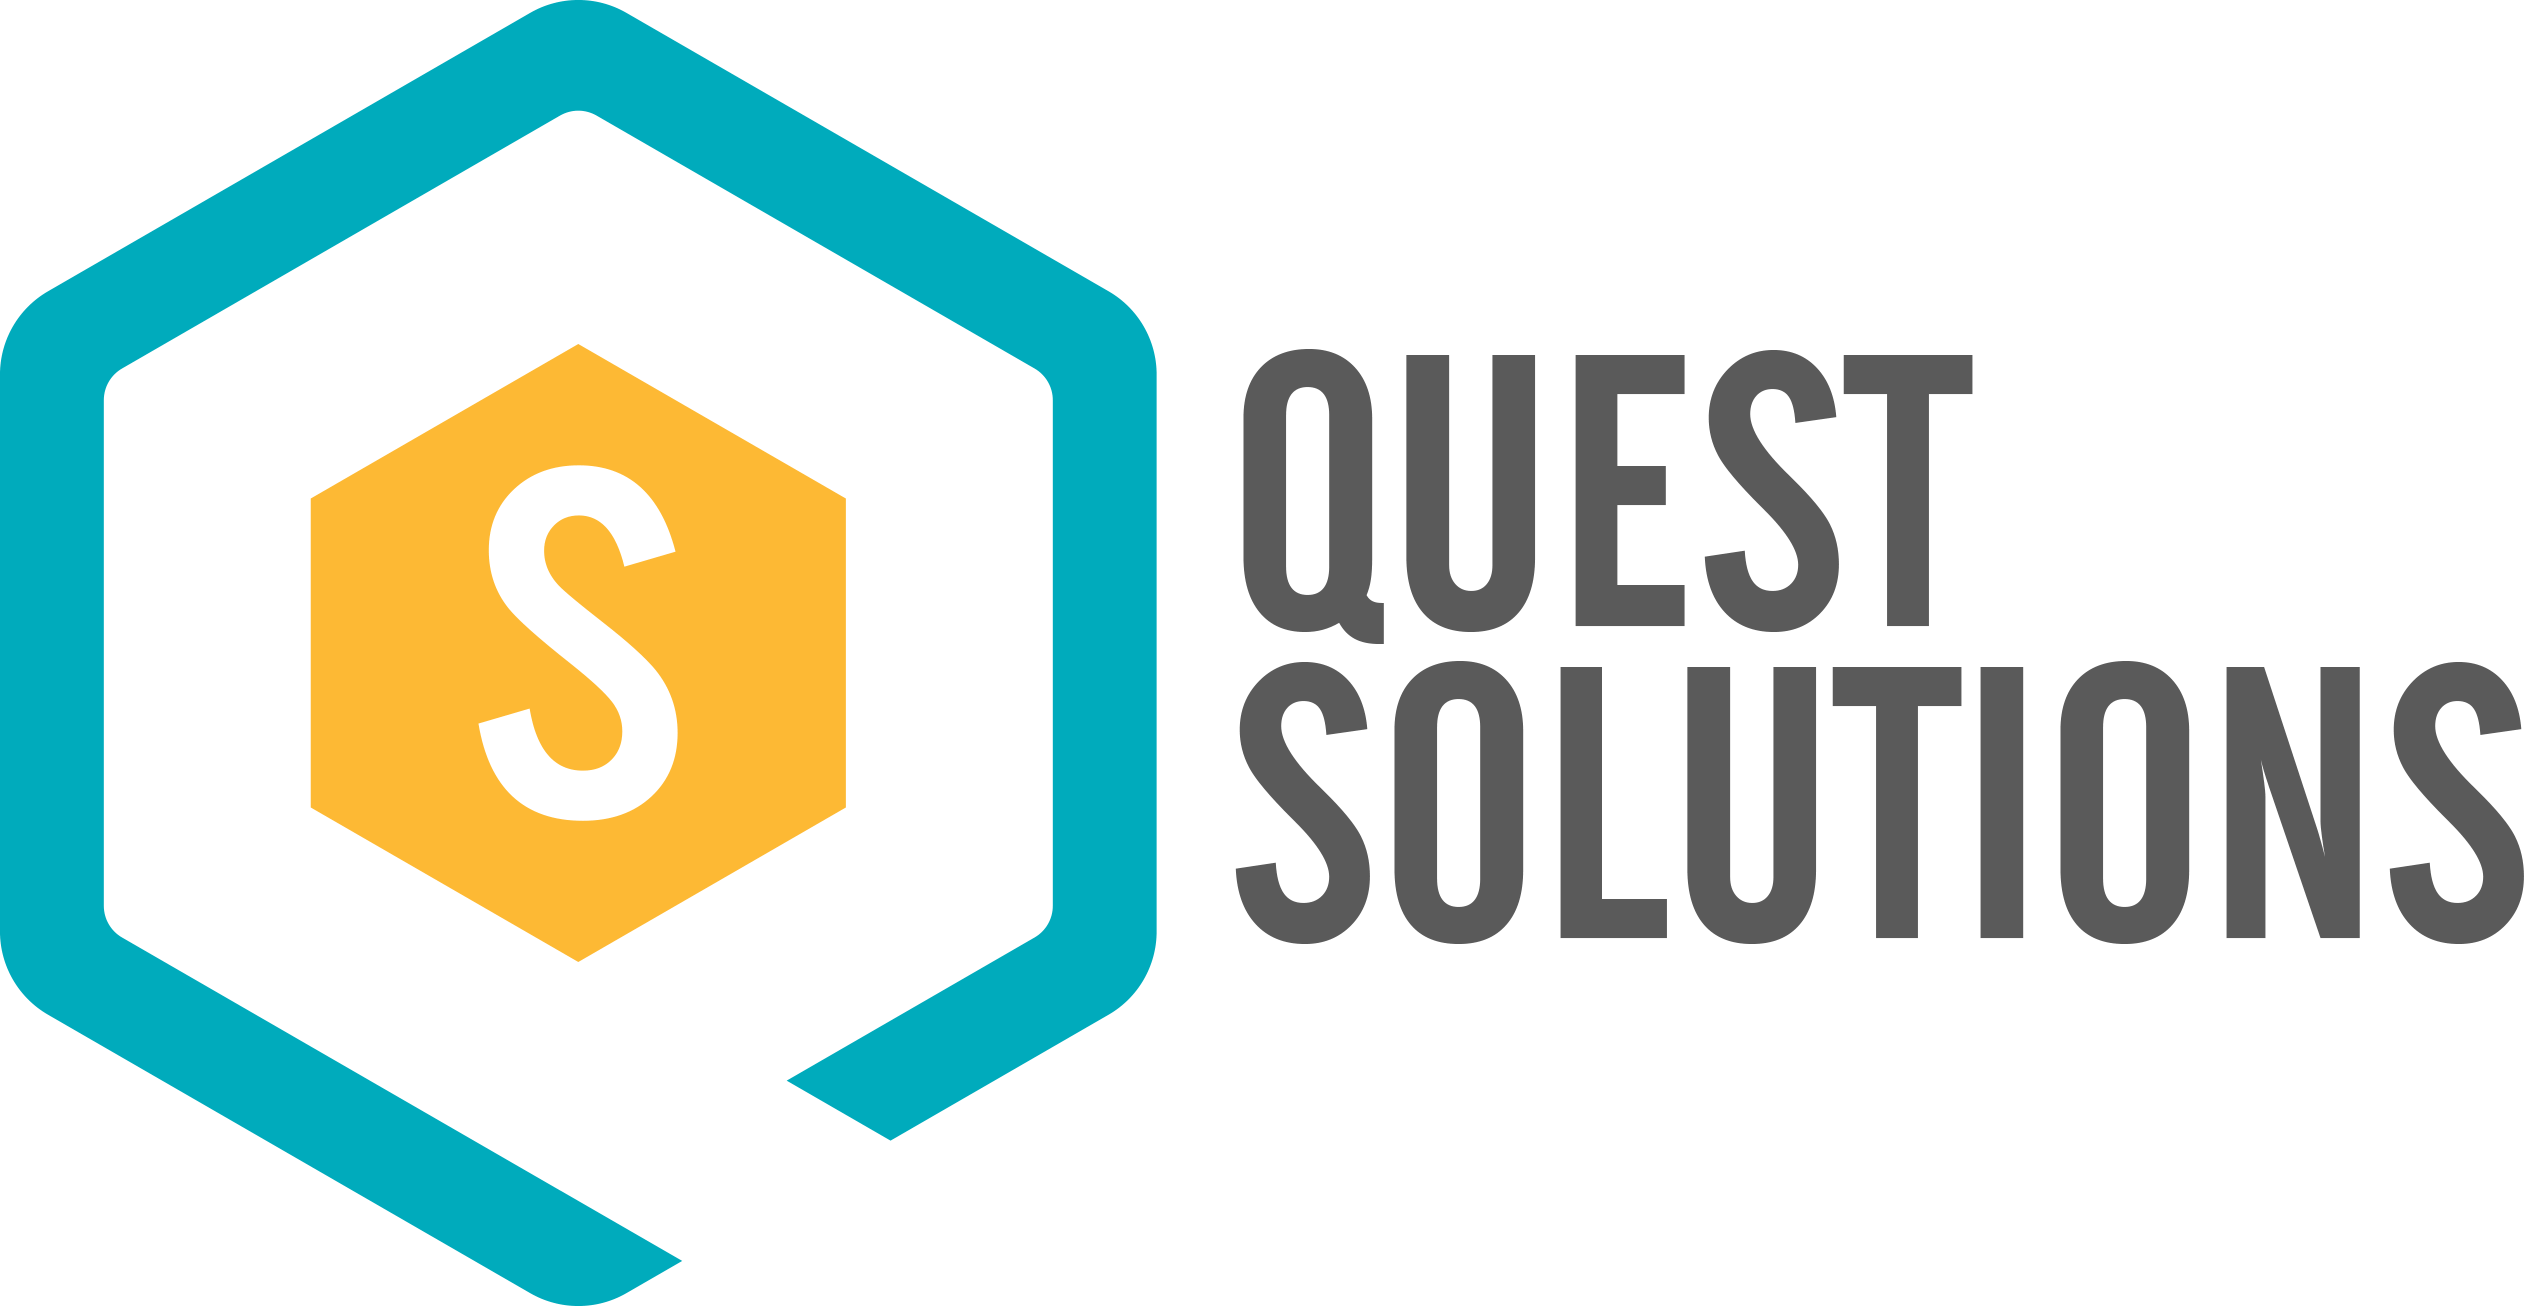 QUESTSOLUTION – Quest Solutions Established in 2015 , Quest Solutions has emerged as Large Network on Web operating multiple operations